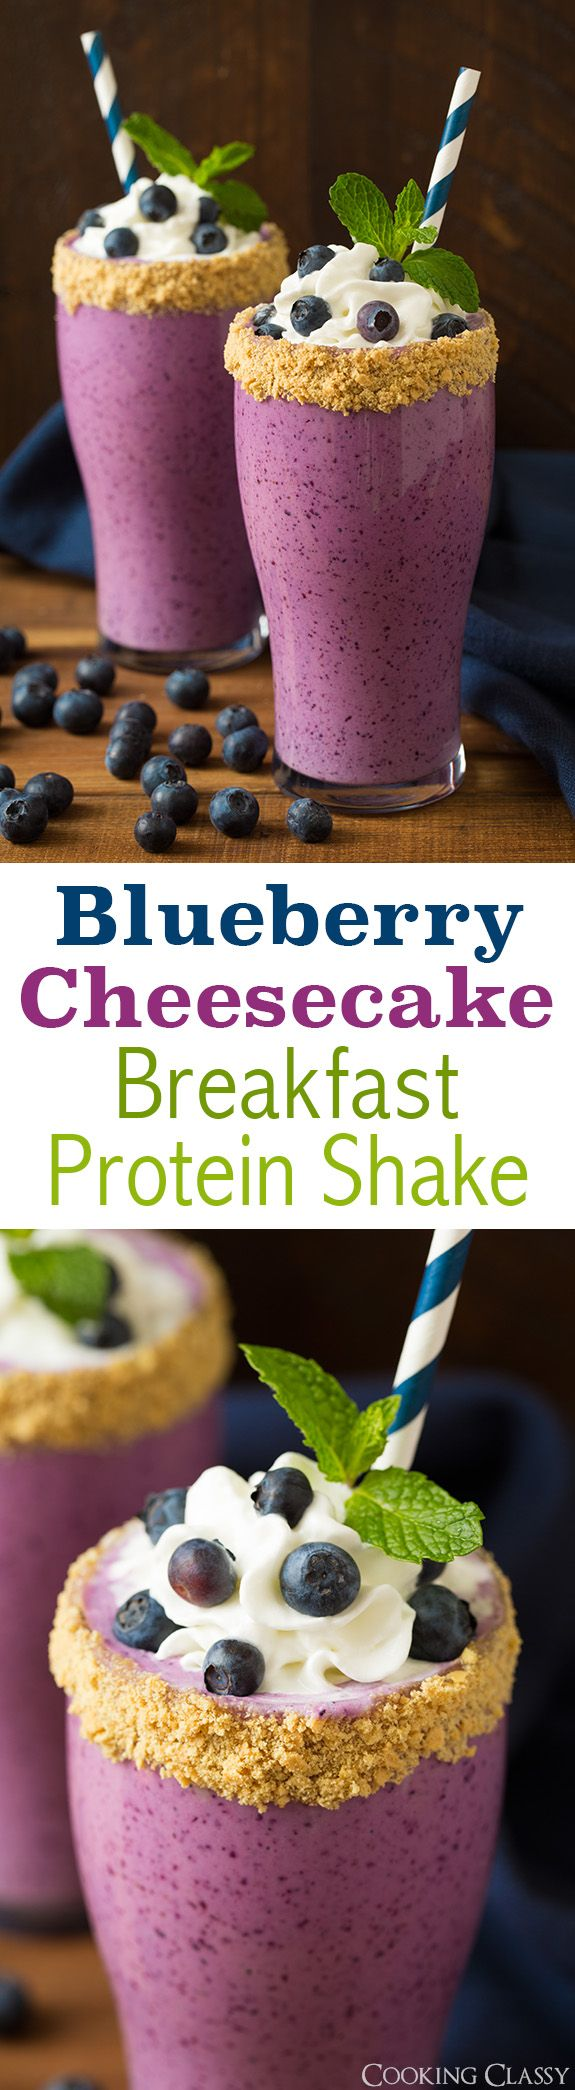 protein shake for breakfast 1000 ideas about breakfast protein shakes on 30834